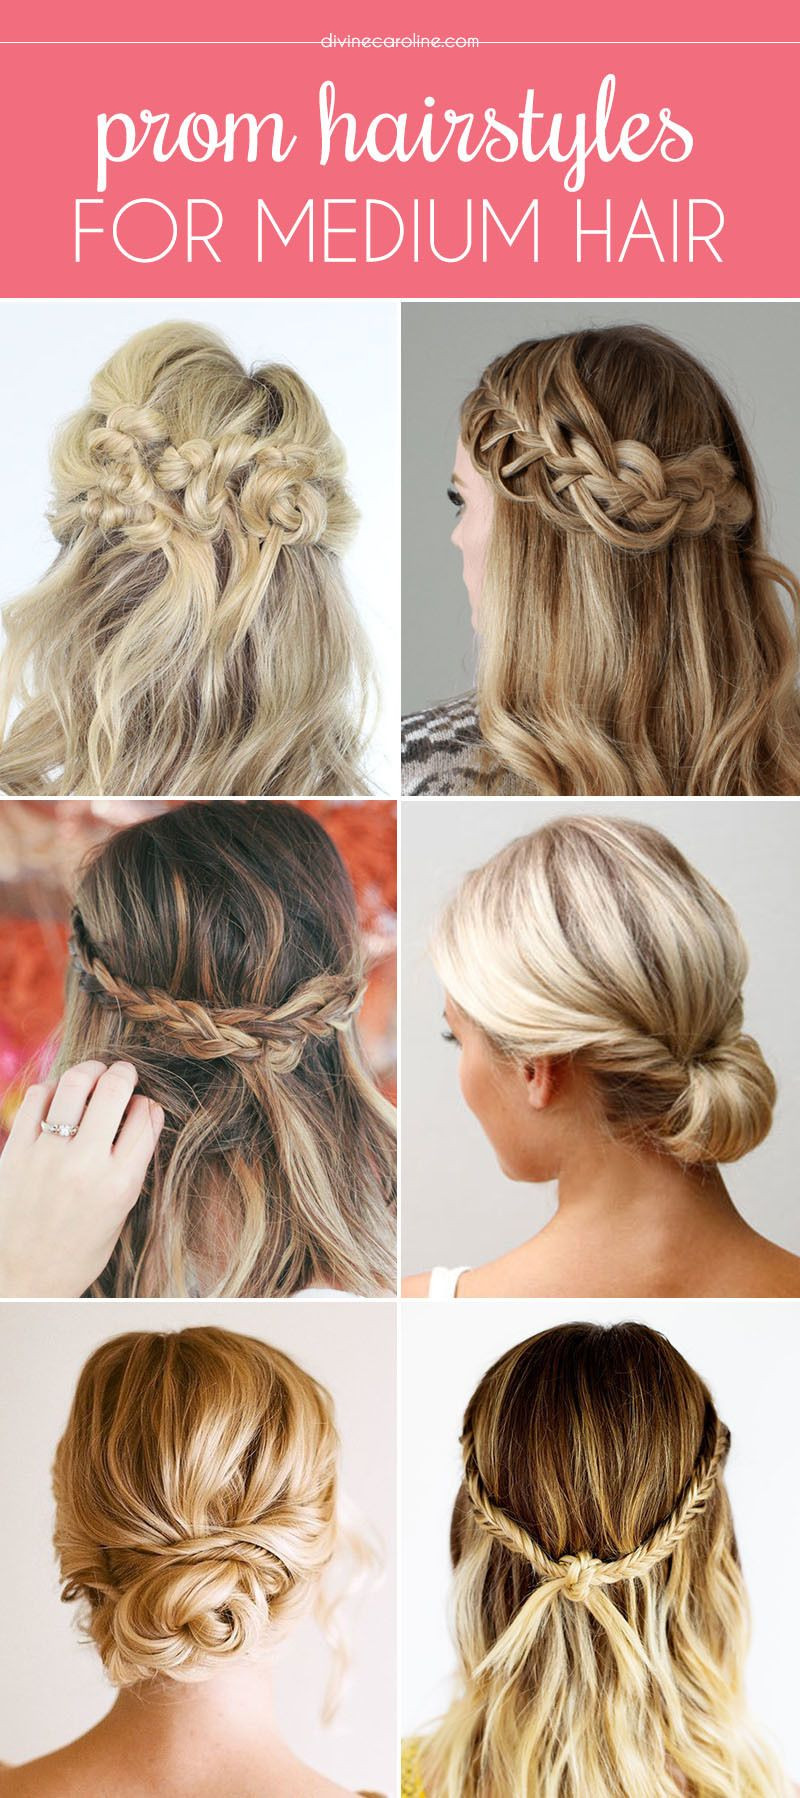 Best ideas about Medium Prom Hairstyles . Save or Pin Our Favorite Prom Hairstyles for Medium Length Hair Now.